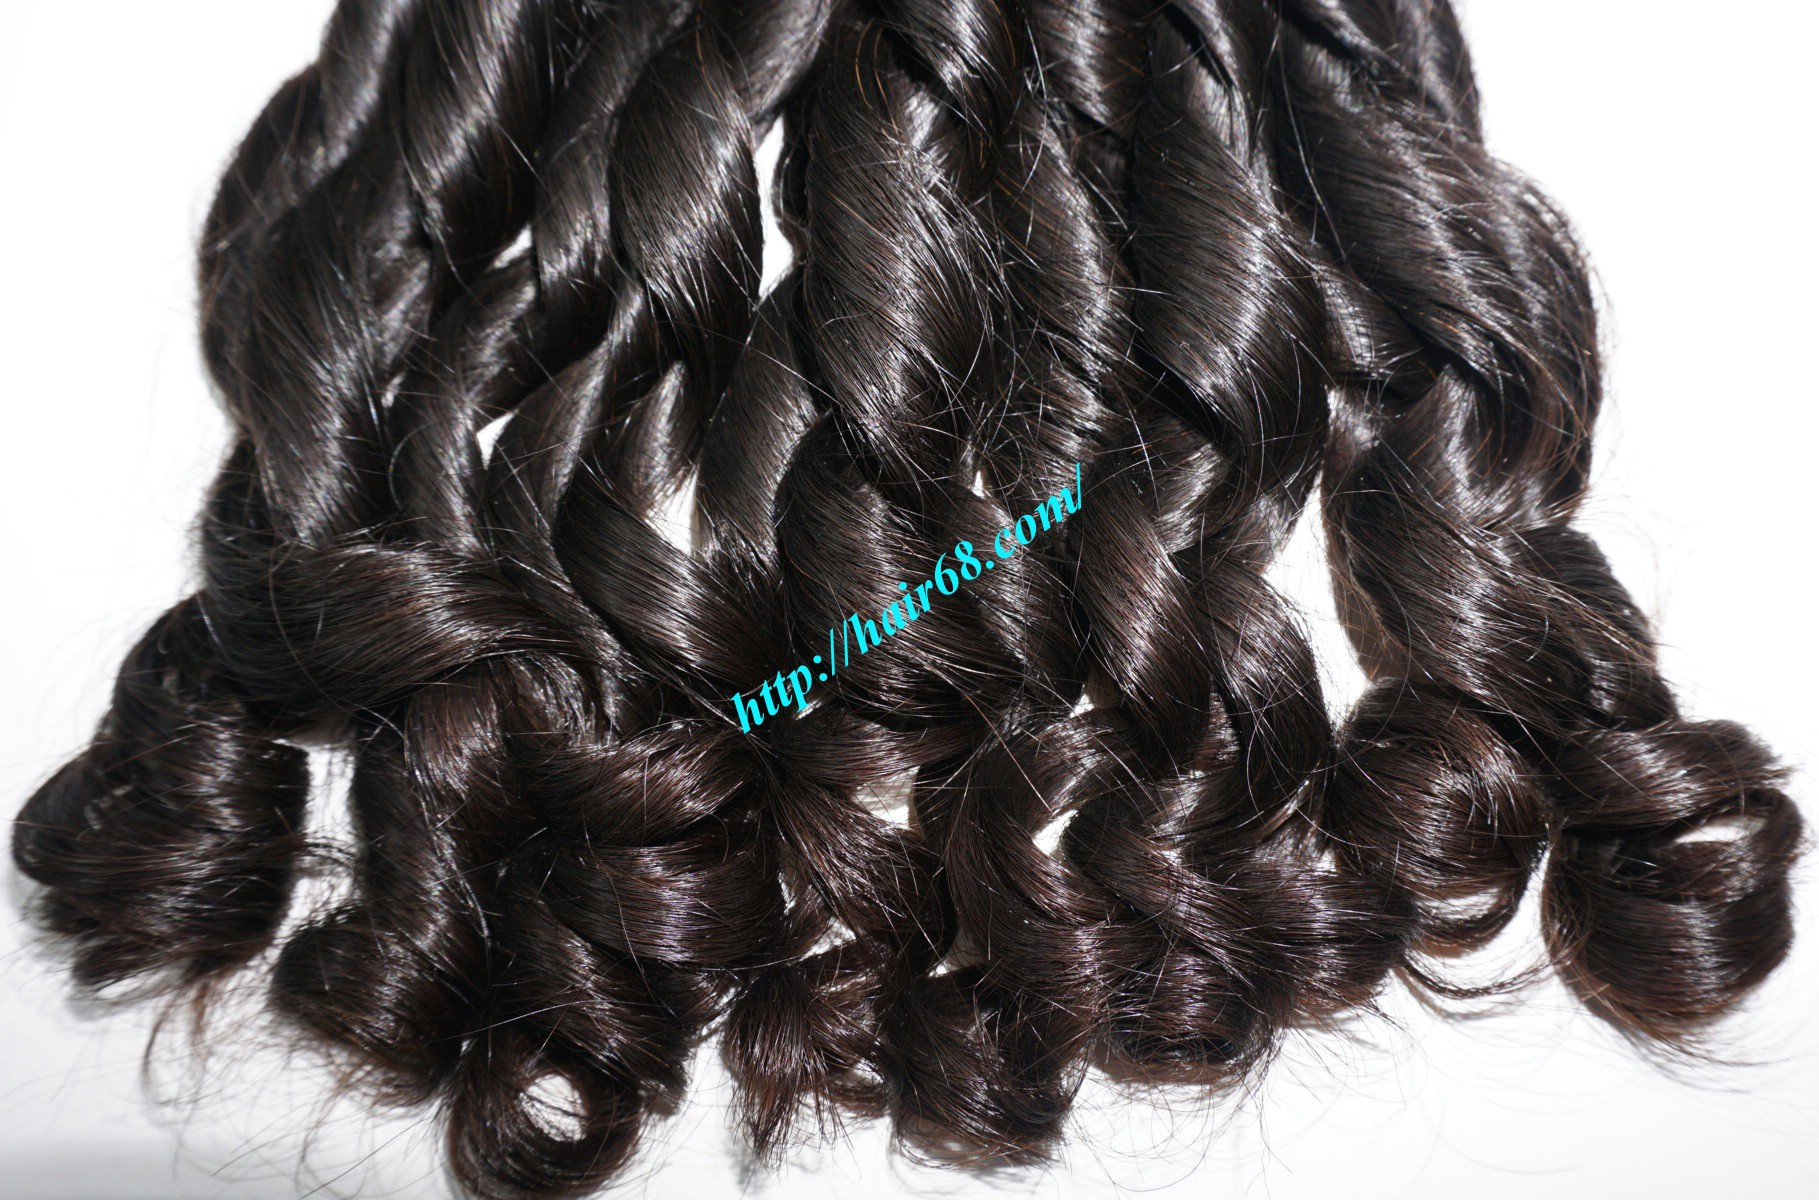 20 inch - Weave Loose Curly Hair Extensions - Double Drawn 3